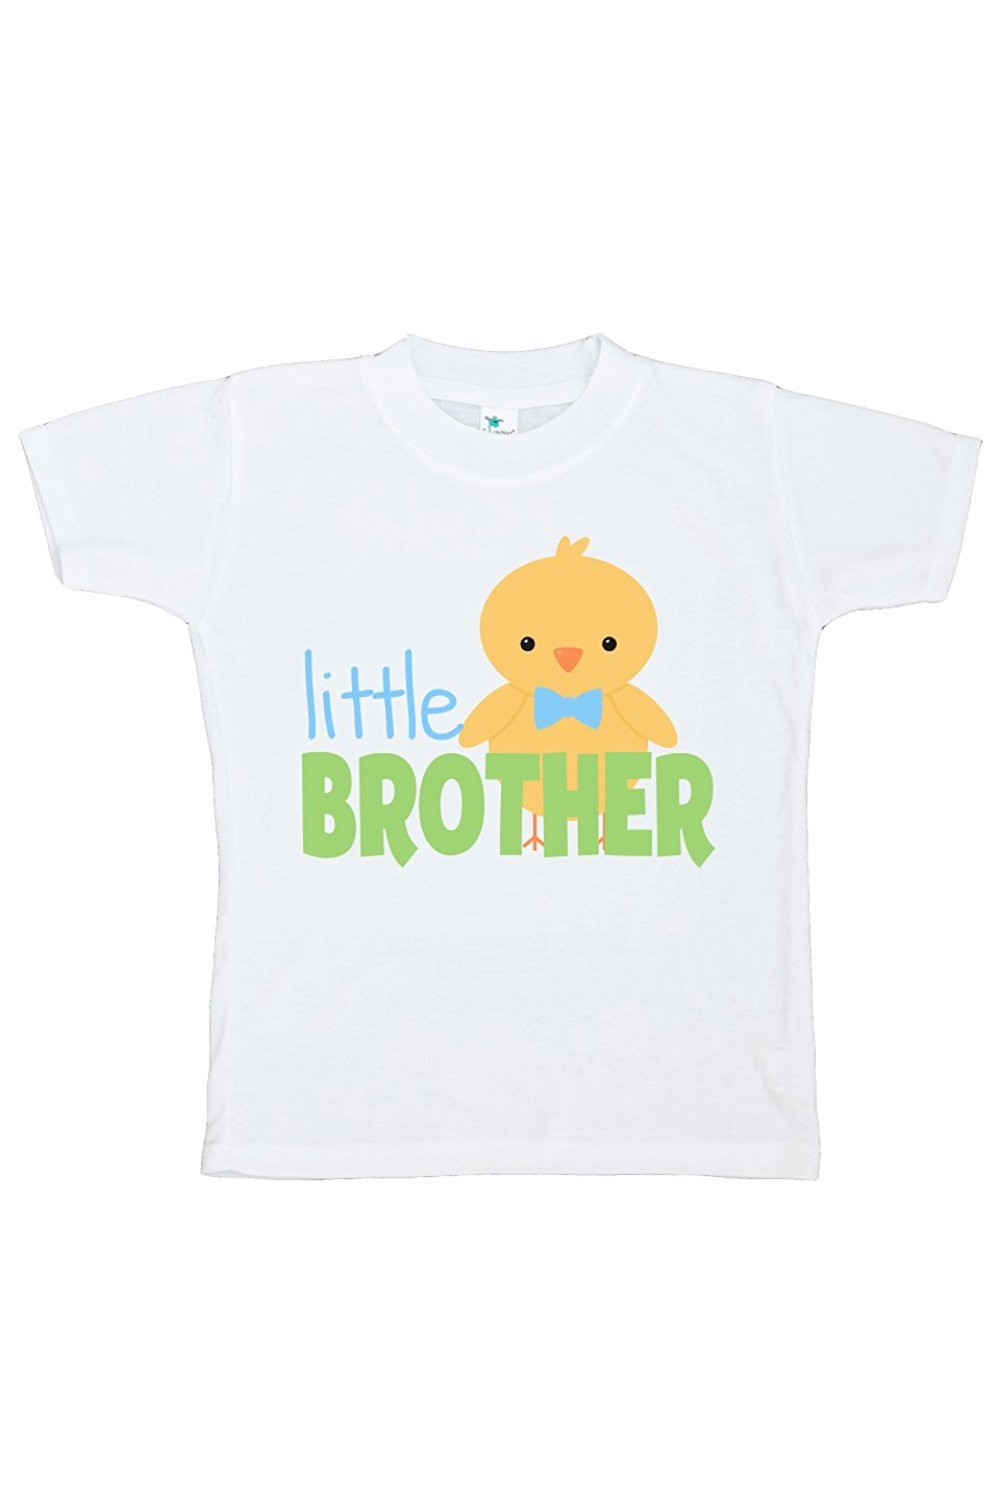 Custom Party Shop Boy's Little Brother Easter Tshirt - Blue and Green / 5/6T Shirt